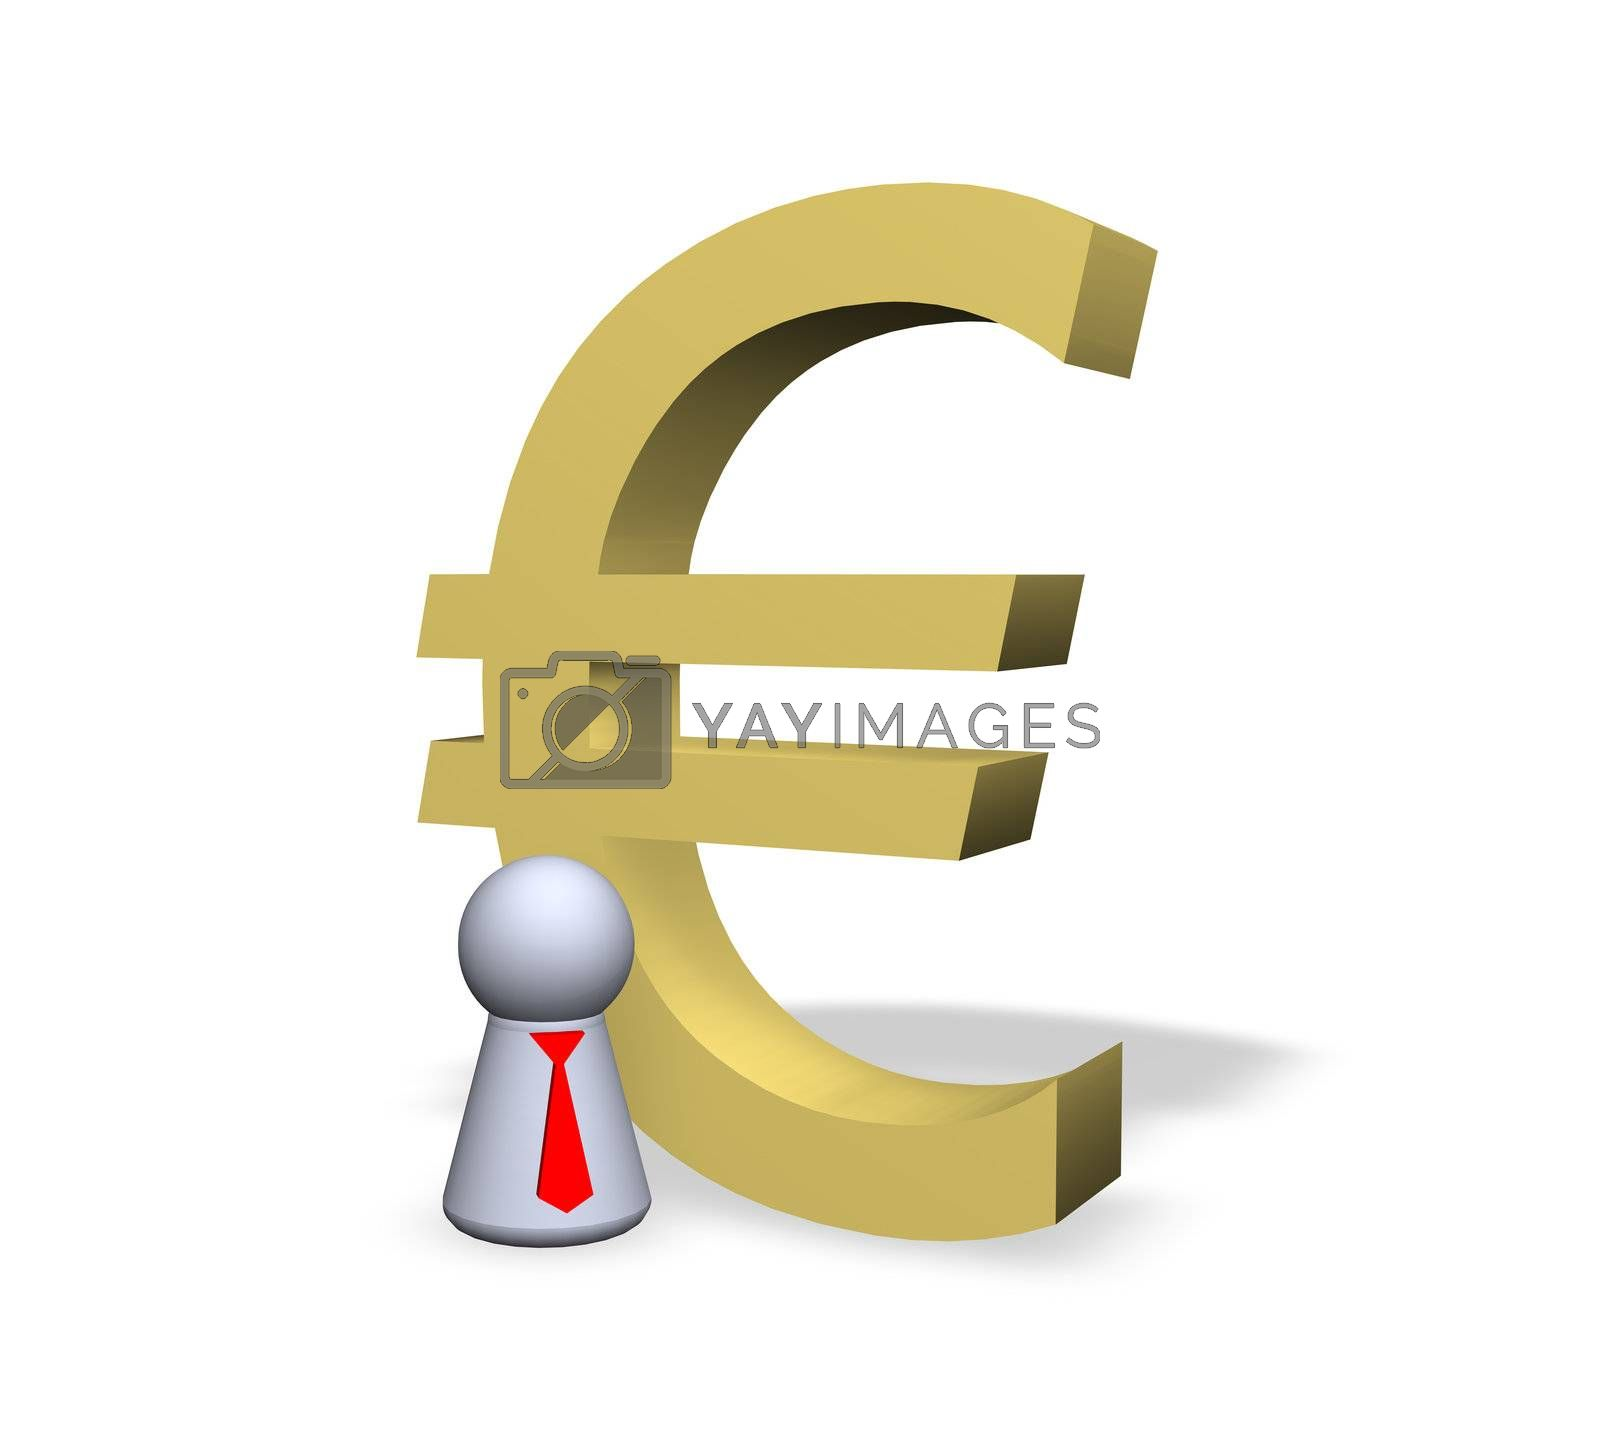 euro symbol and play figure businessman with red tie